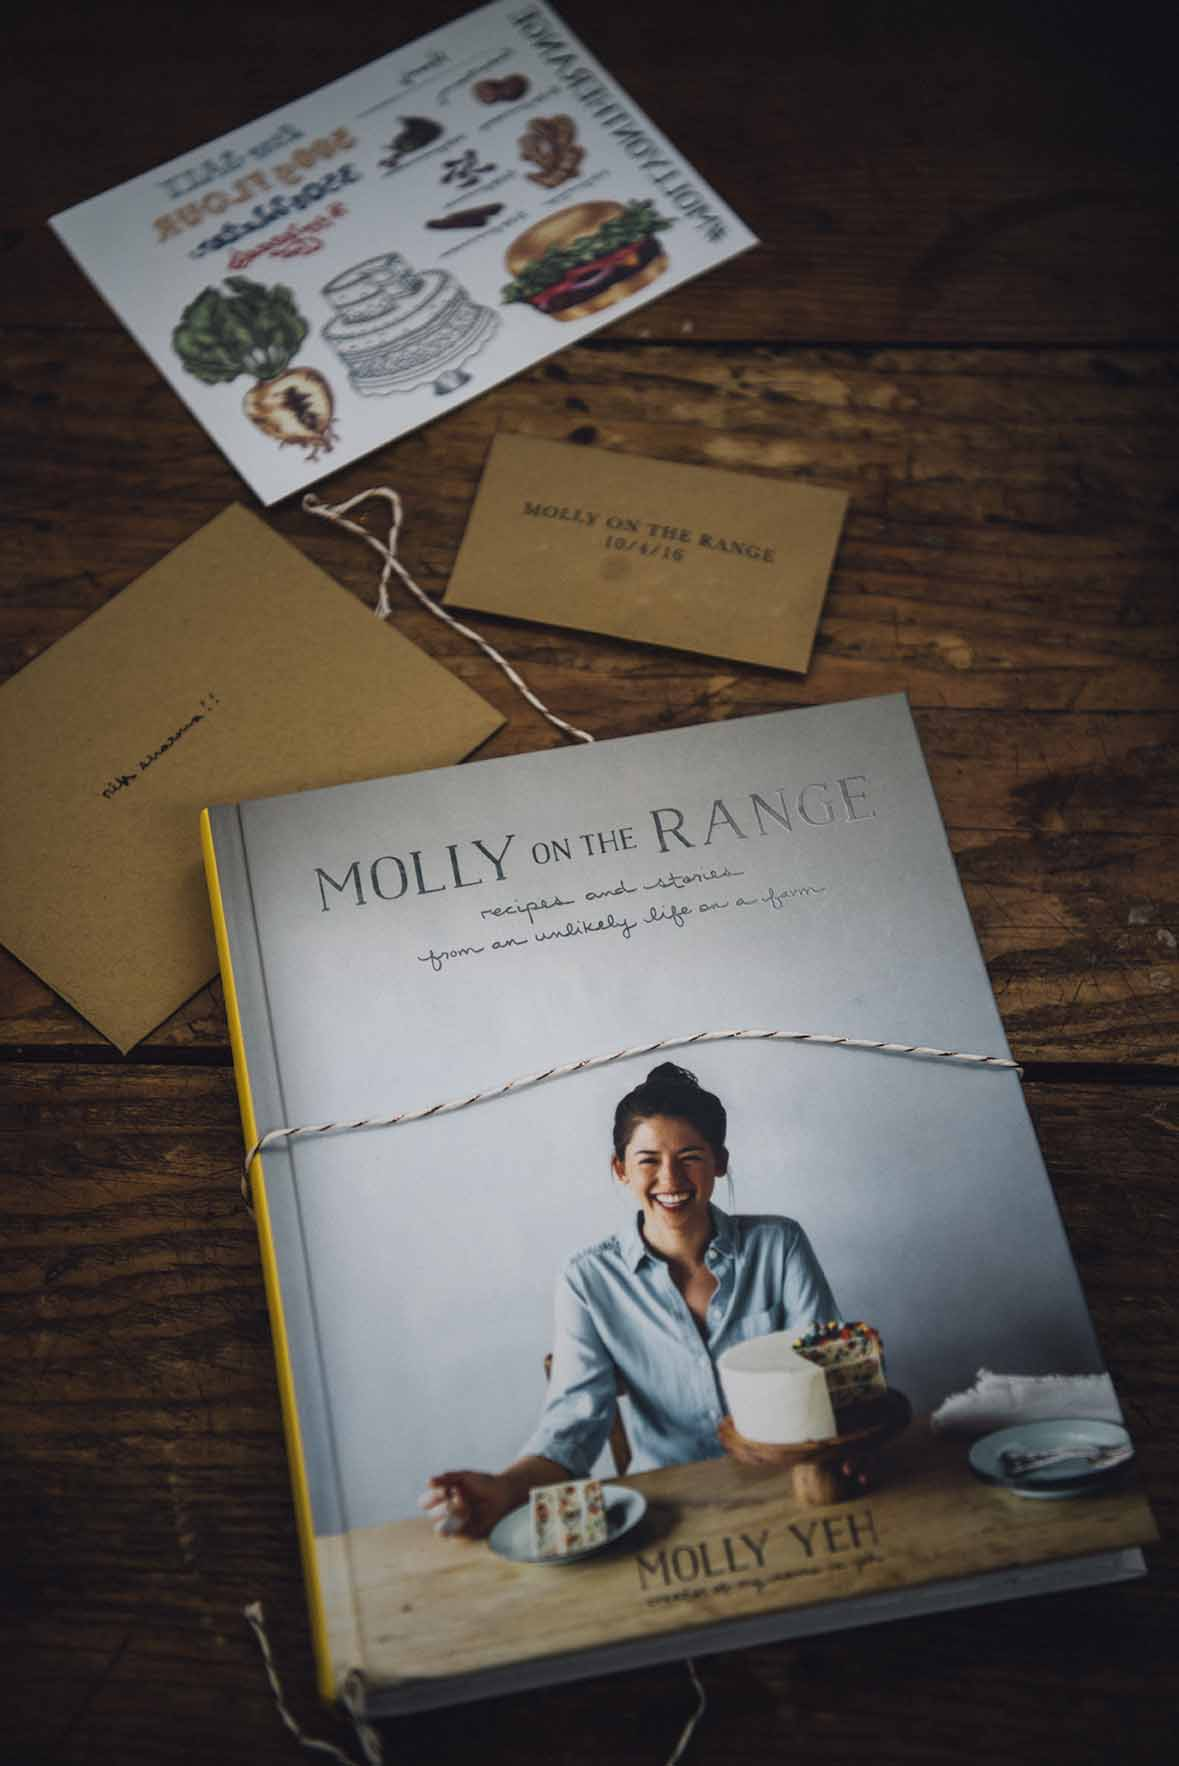 molly yeh's book: Molly on the Range | A Brown Table